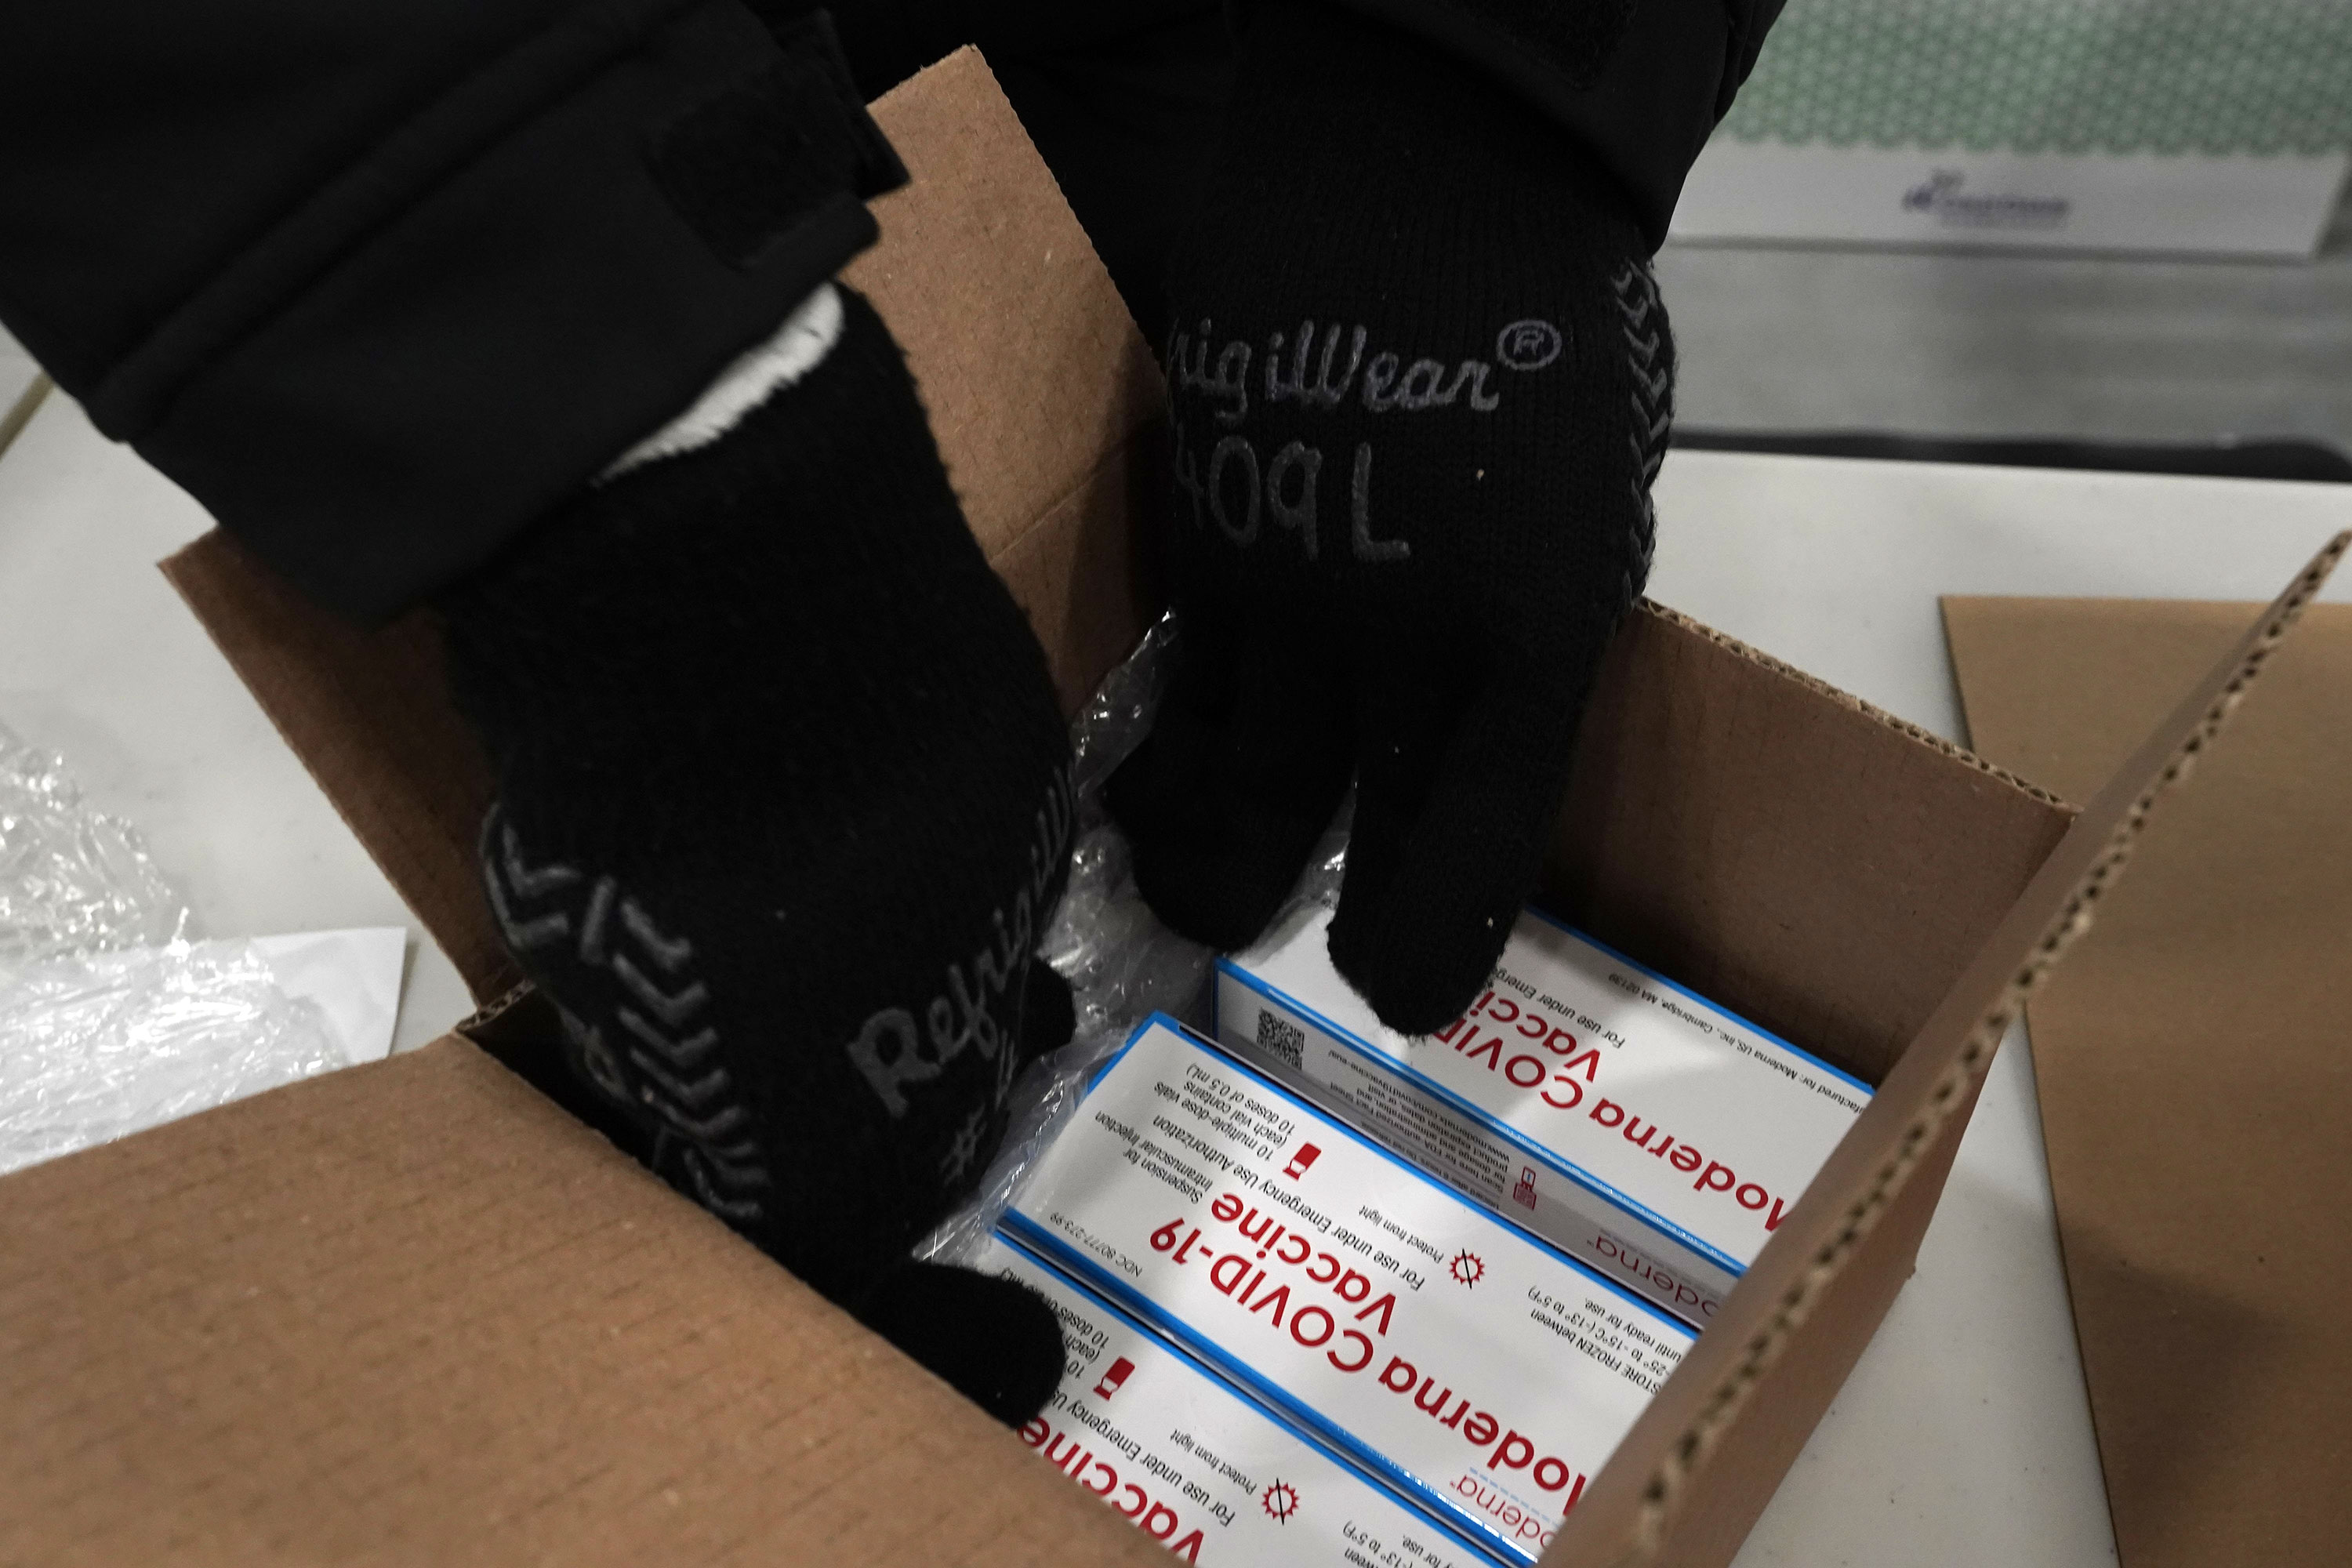 Boxes containing the Moderna Covid-19 vaccine are prepared to be shipped at the McKesson distribution center in Olive Branch, Mississippi, on December 20.